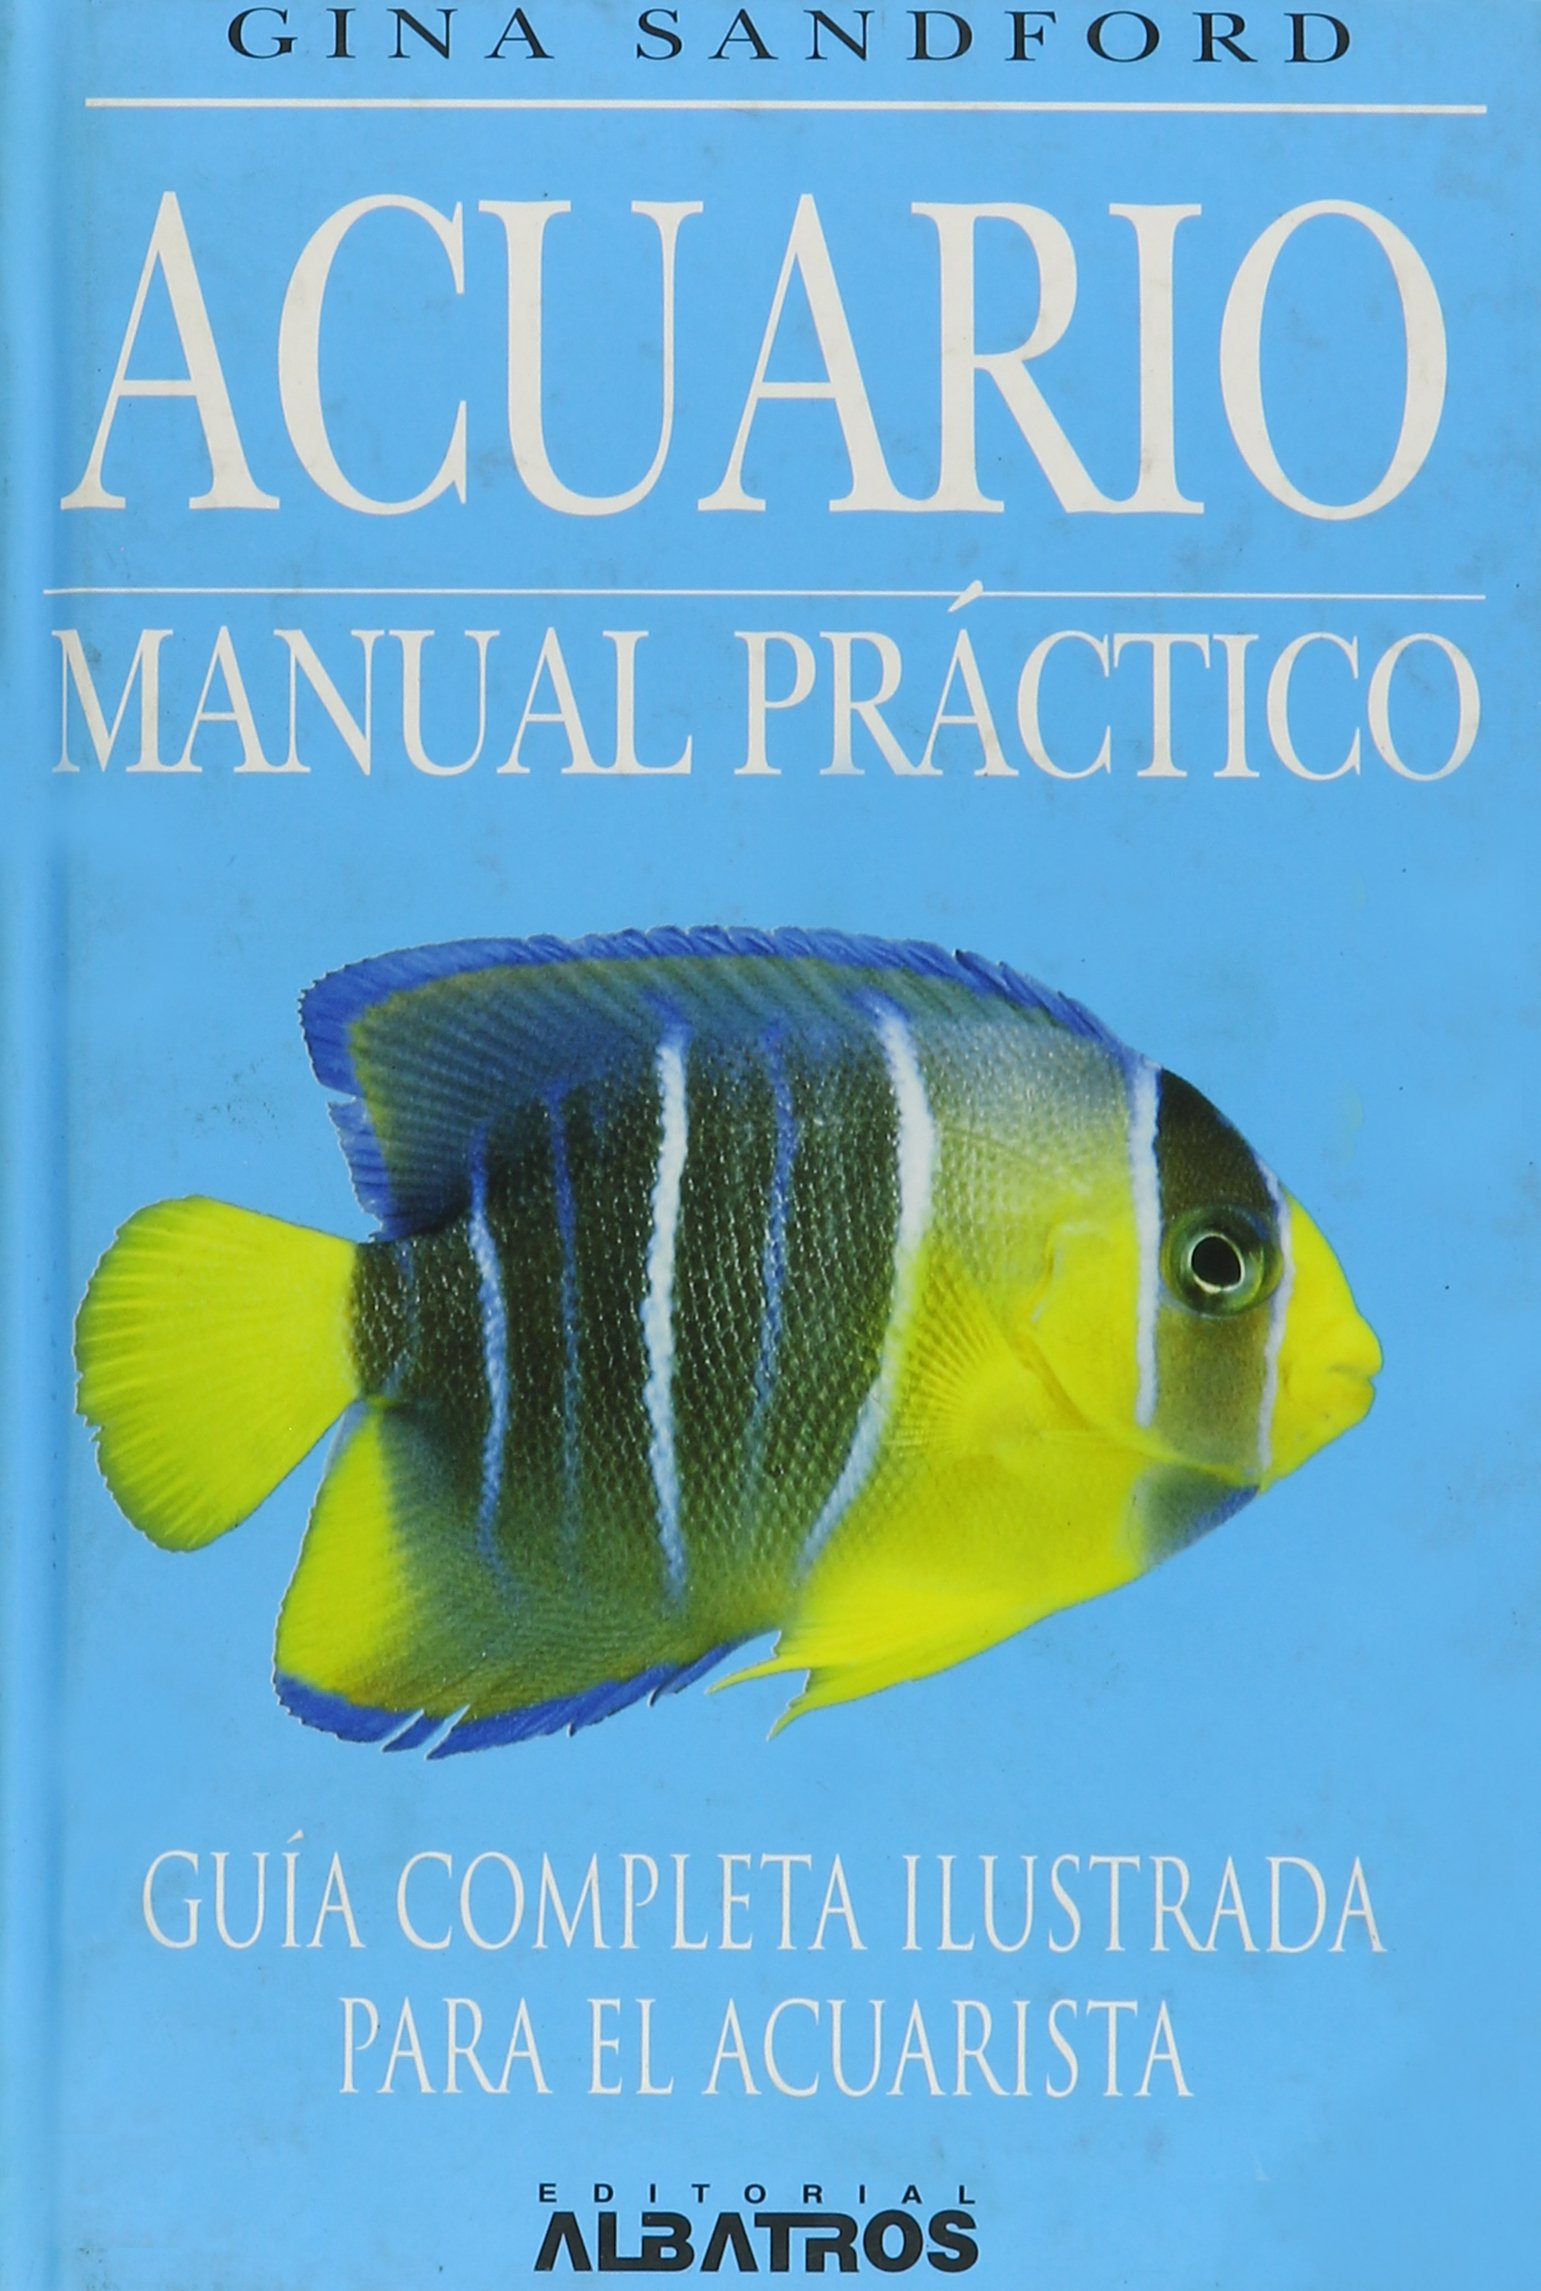 Acuario/ Aquarium: Manual Practico/ an Owners Manual (Spanish Edition) (Spanish) Hardcover – December 30, 1999